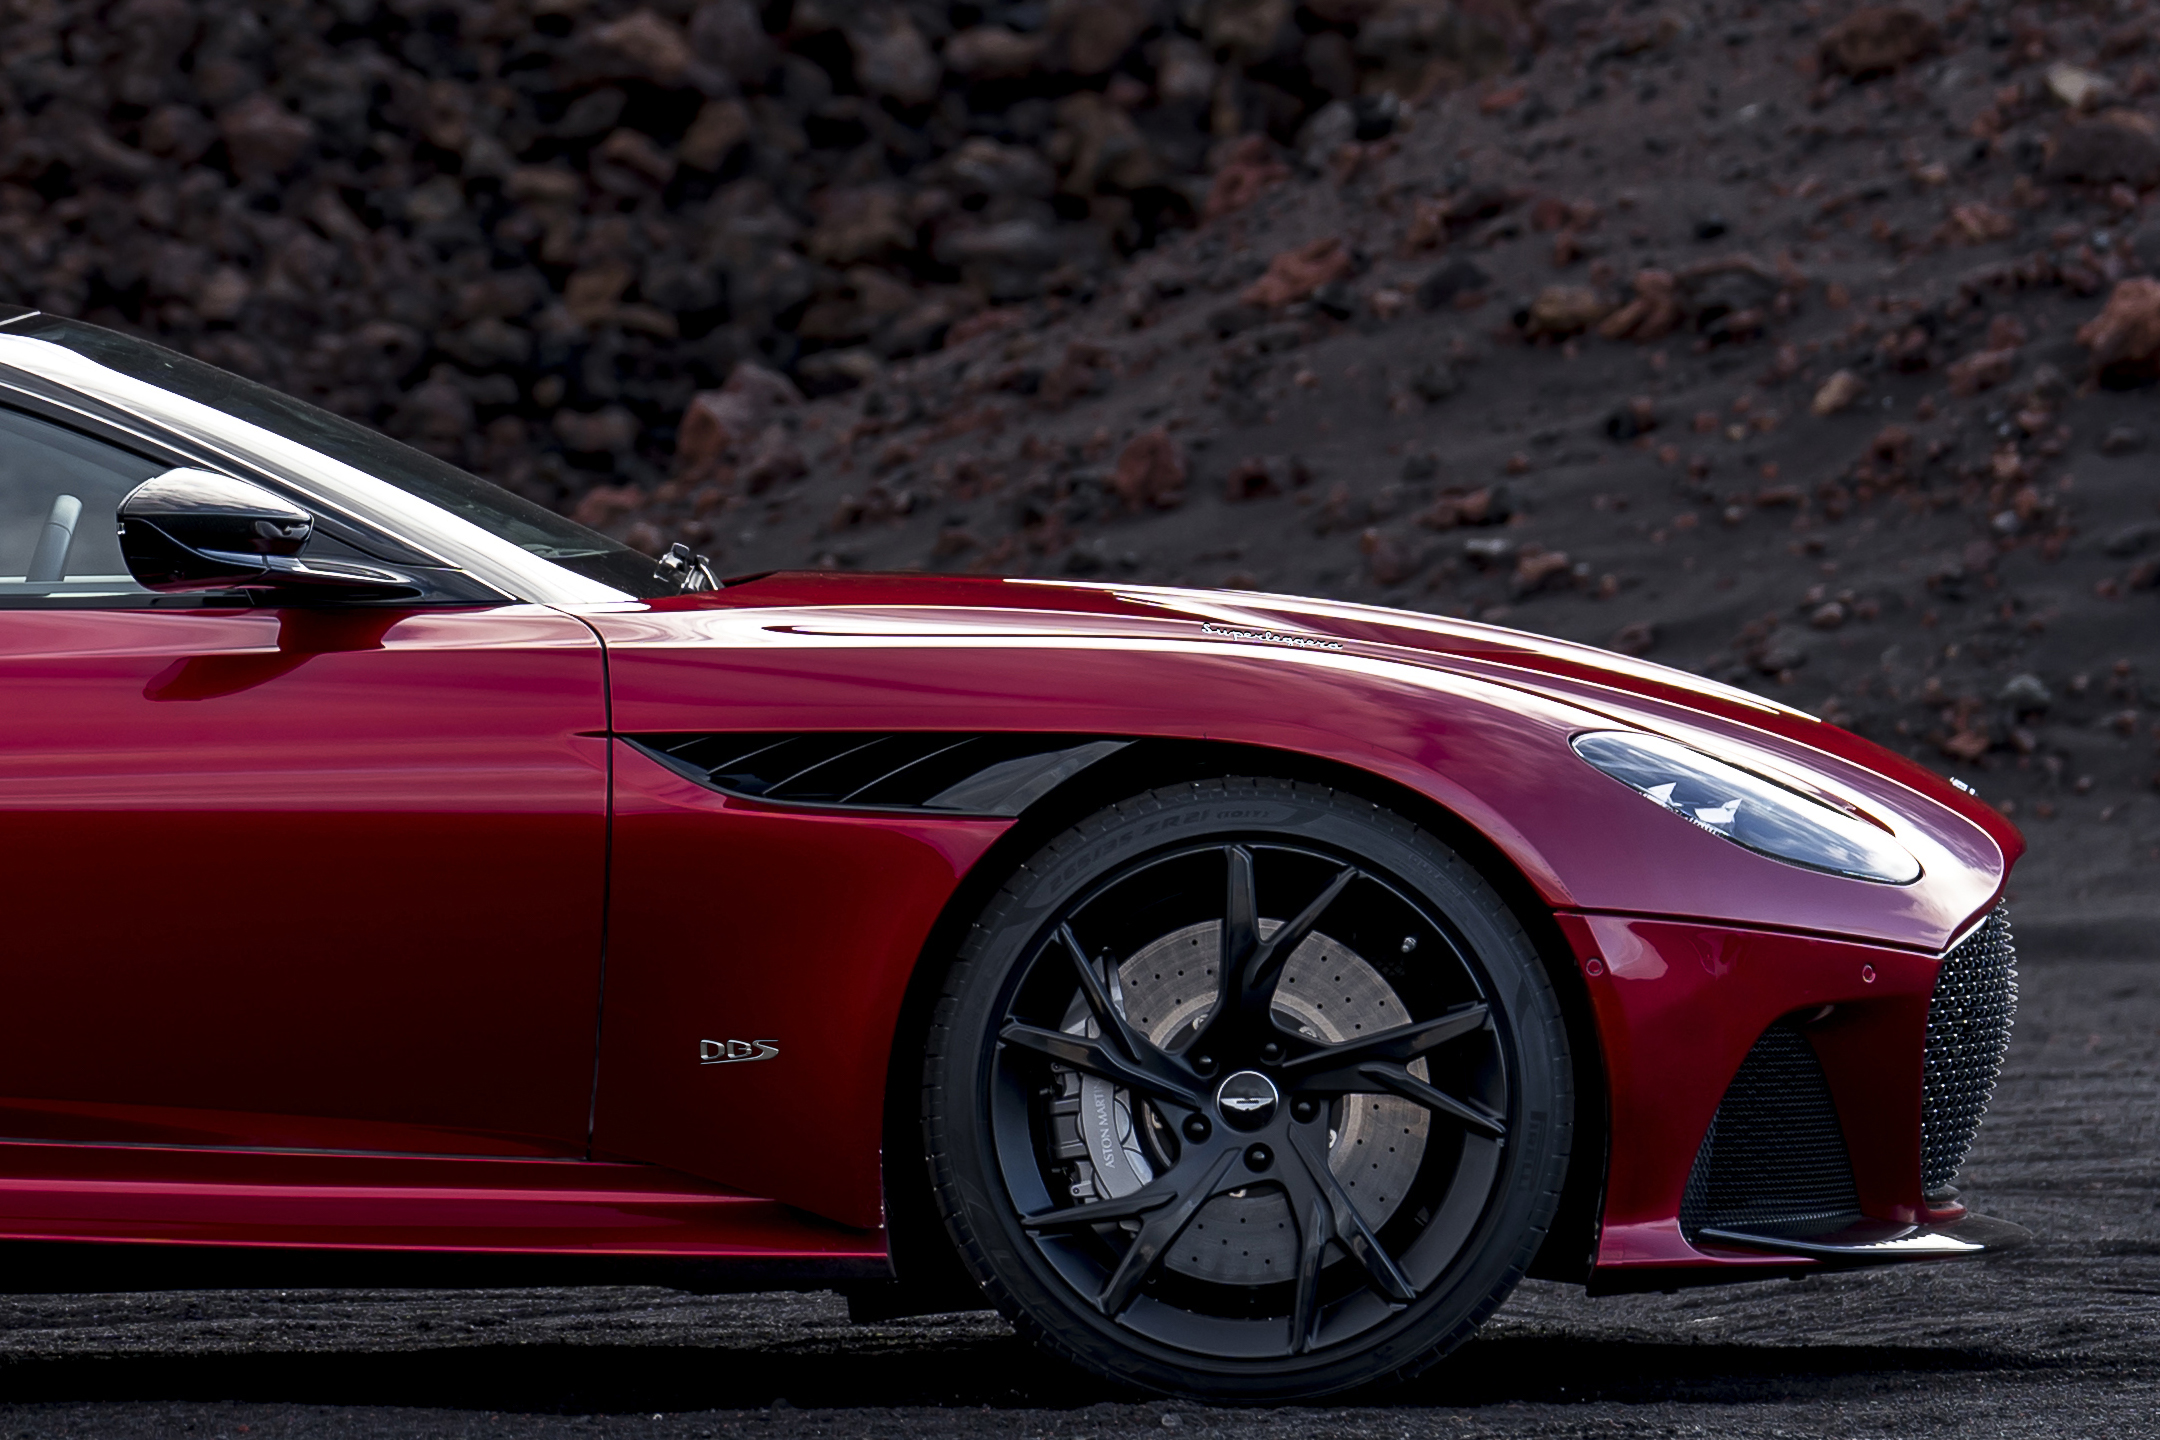 Aston Martin DBS Superleggera - 2018 - front wheel